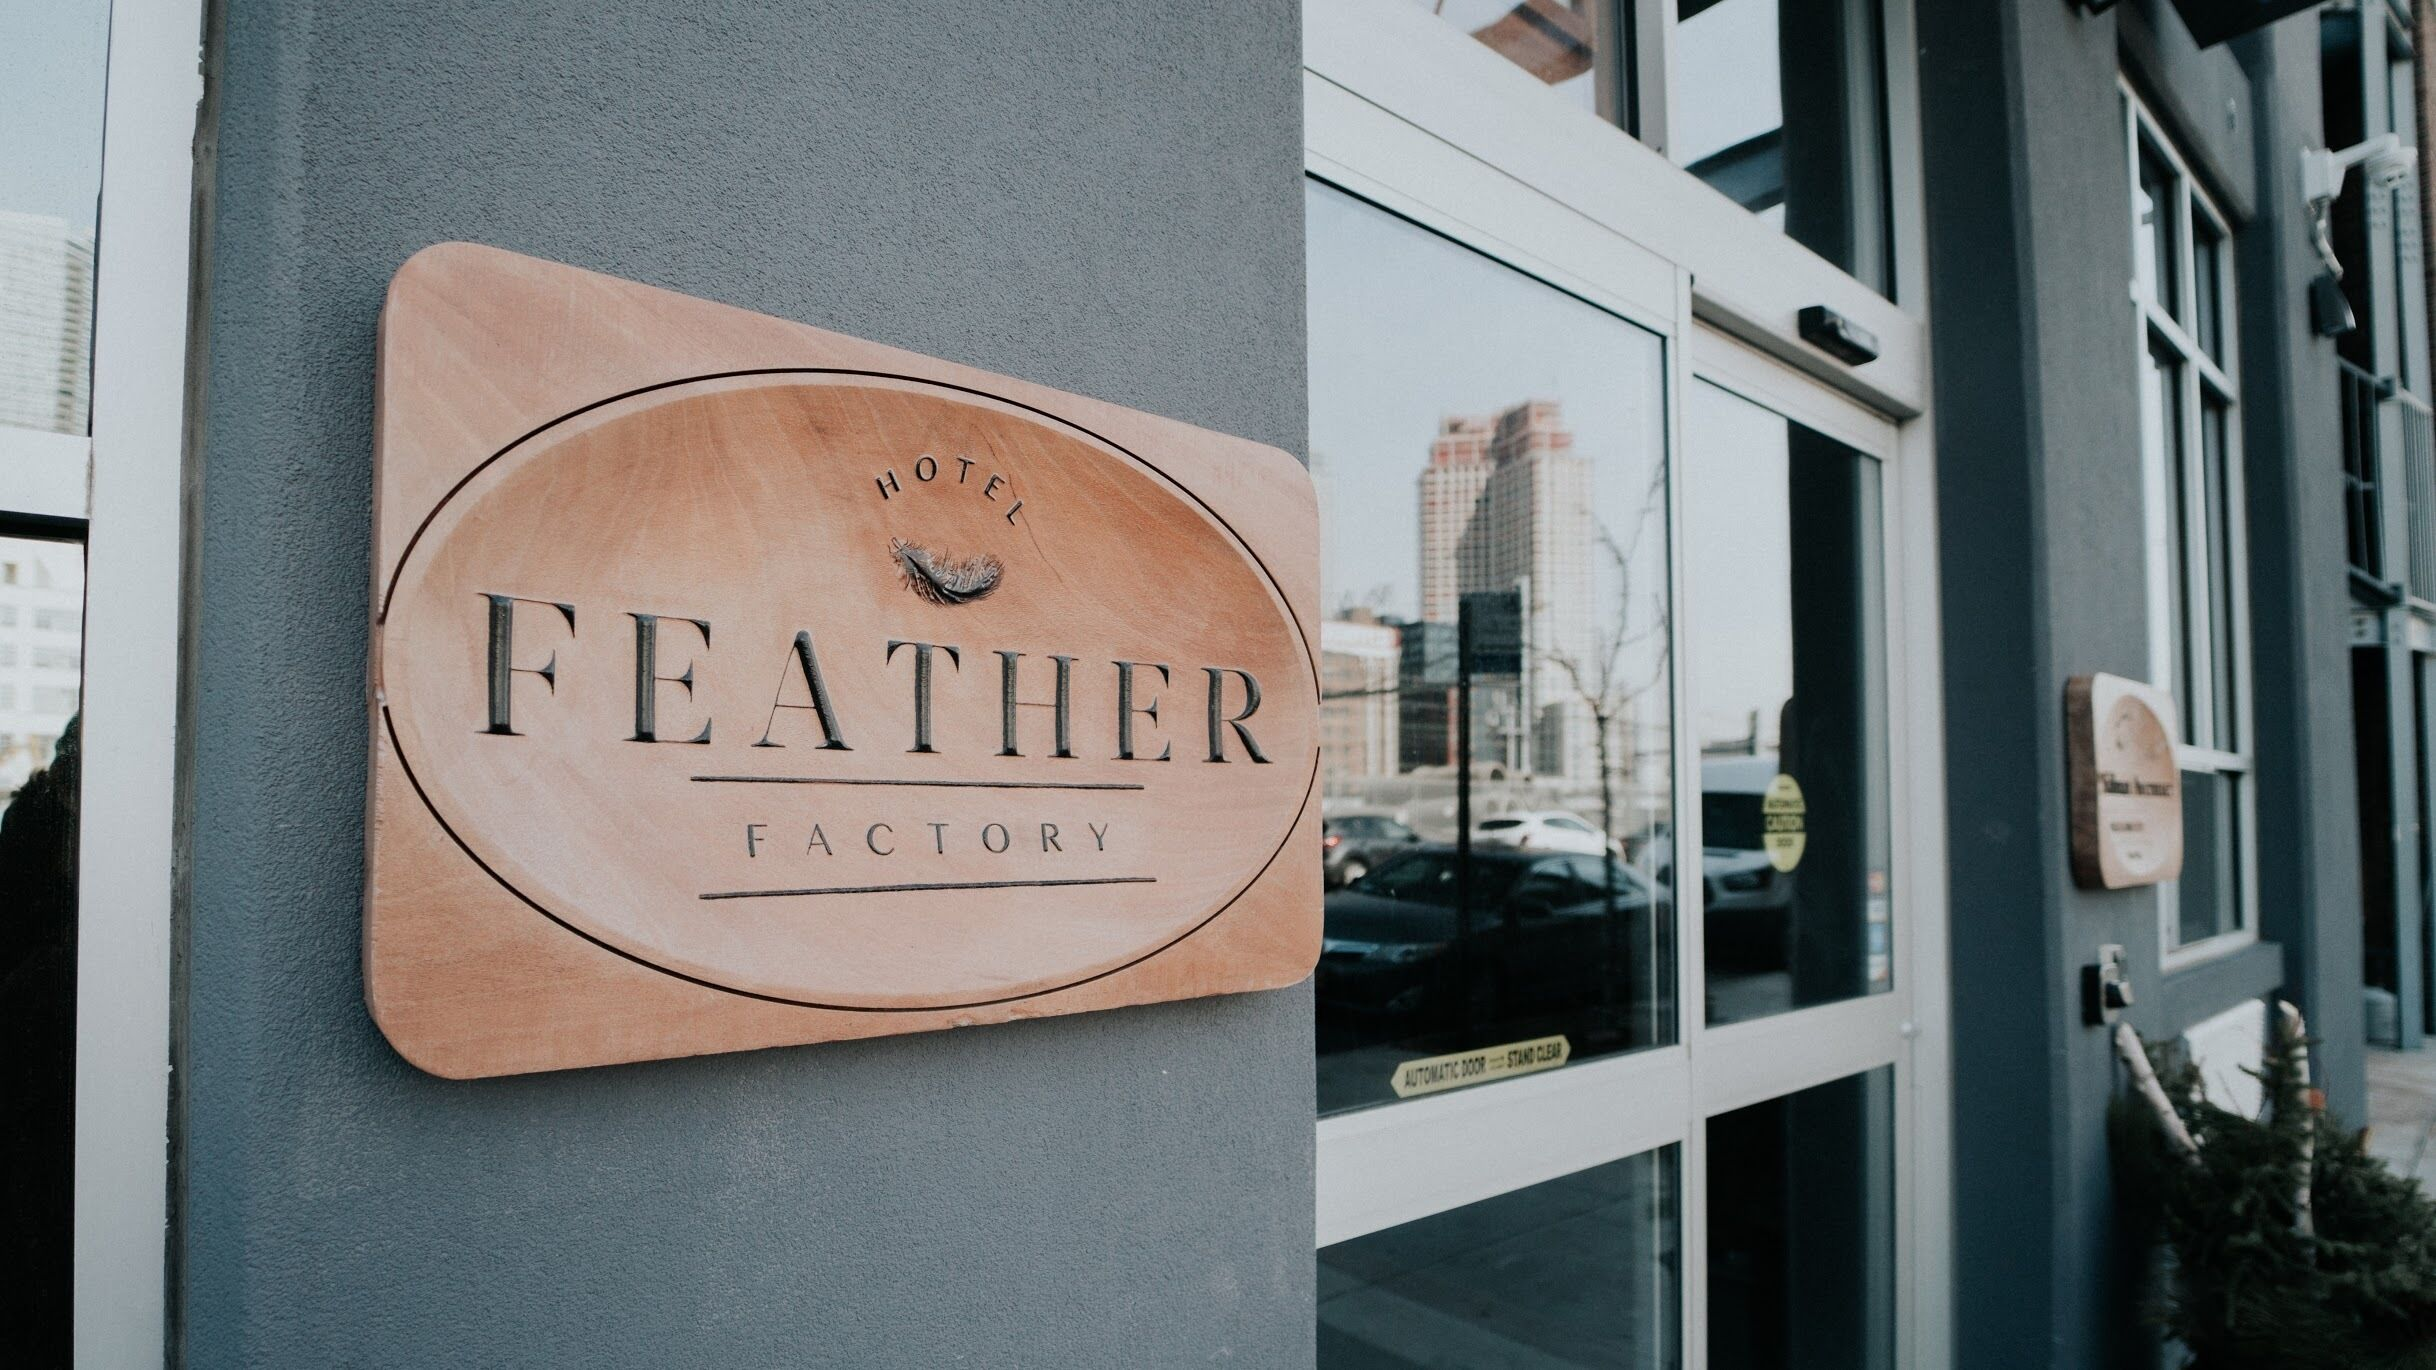 Feather Factory